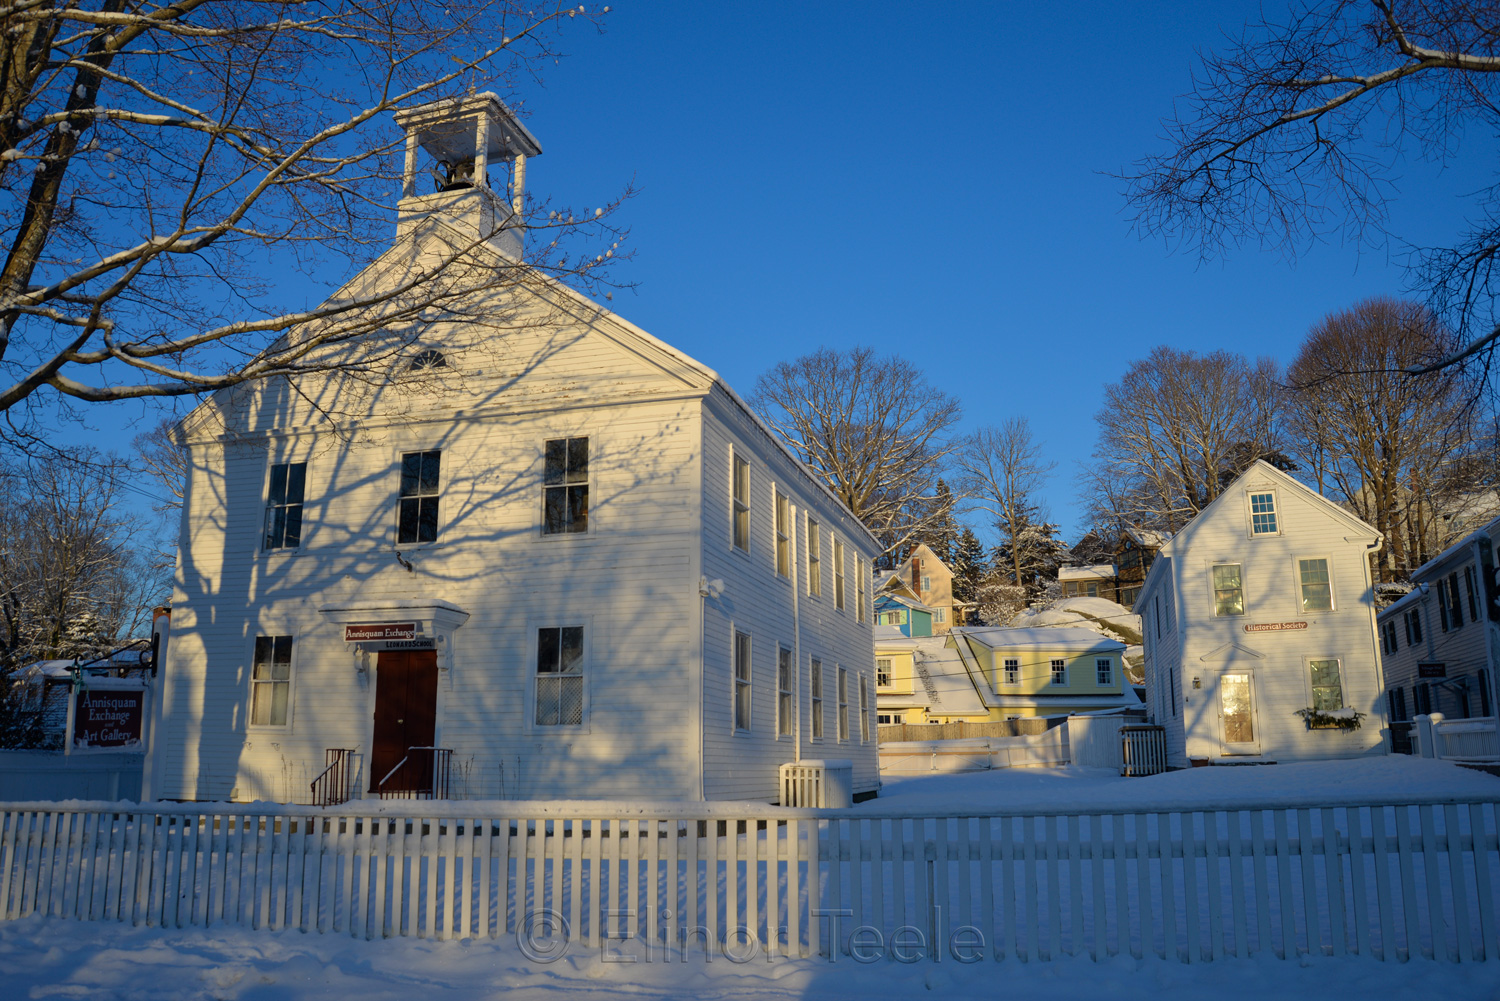 Annisquam Exchange & Historical Society in Winter